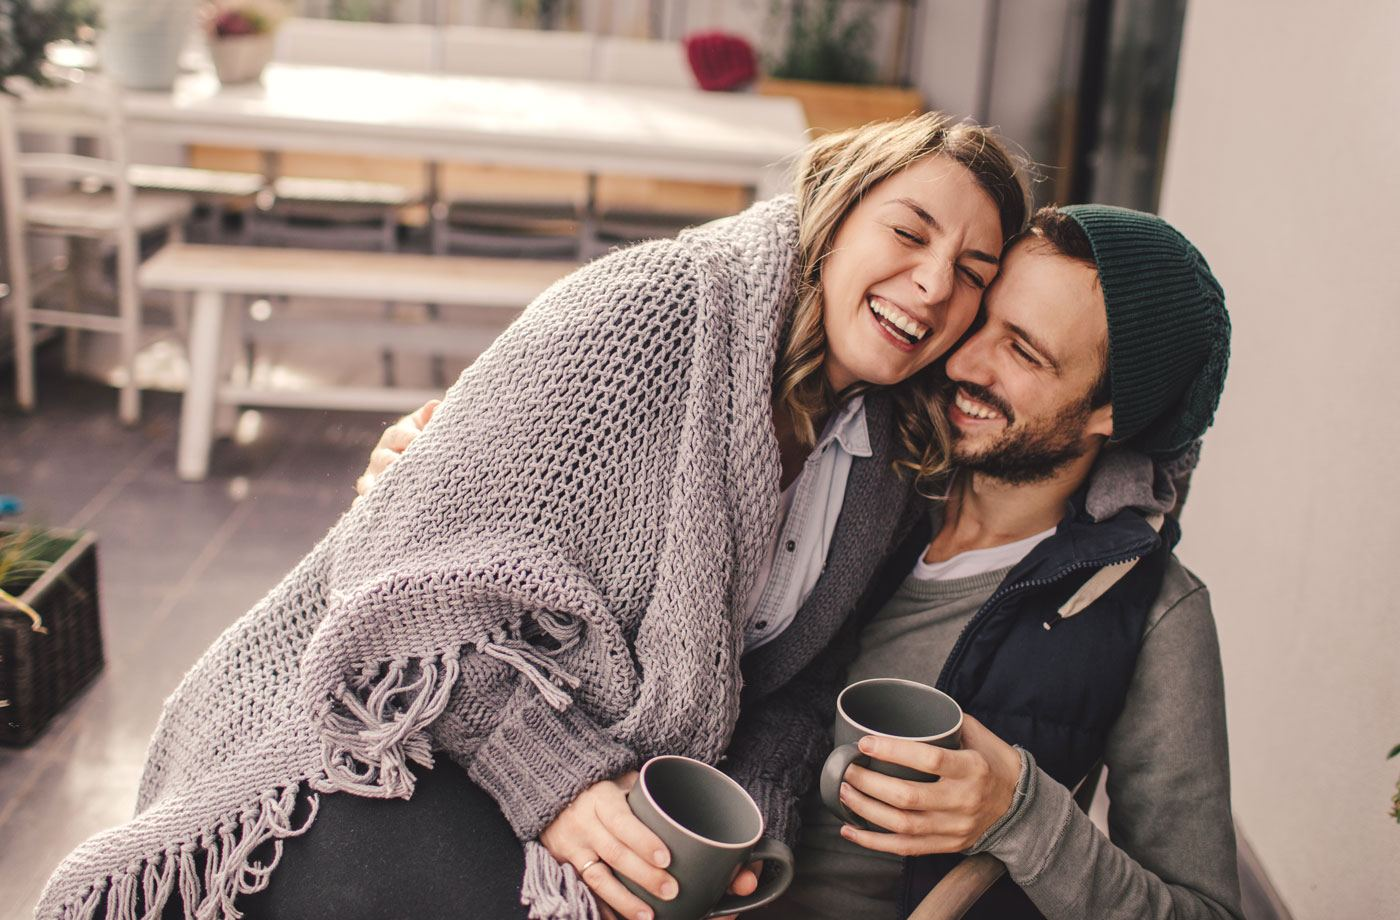 Best Long Term Partners According to Myers-Briggs